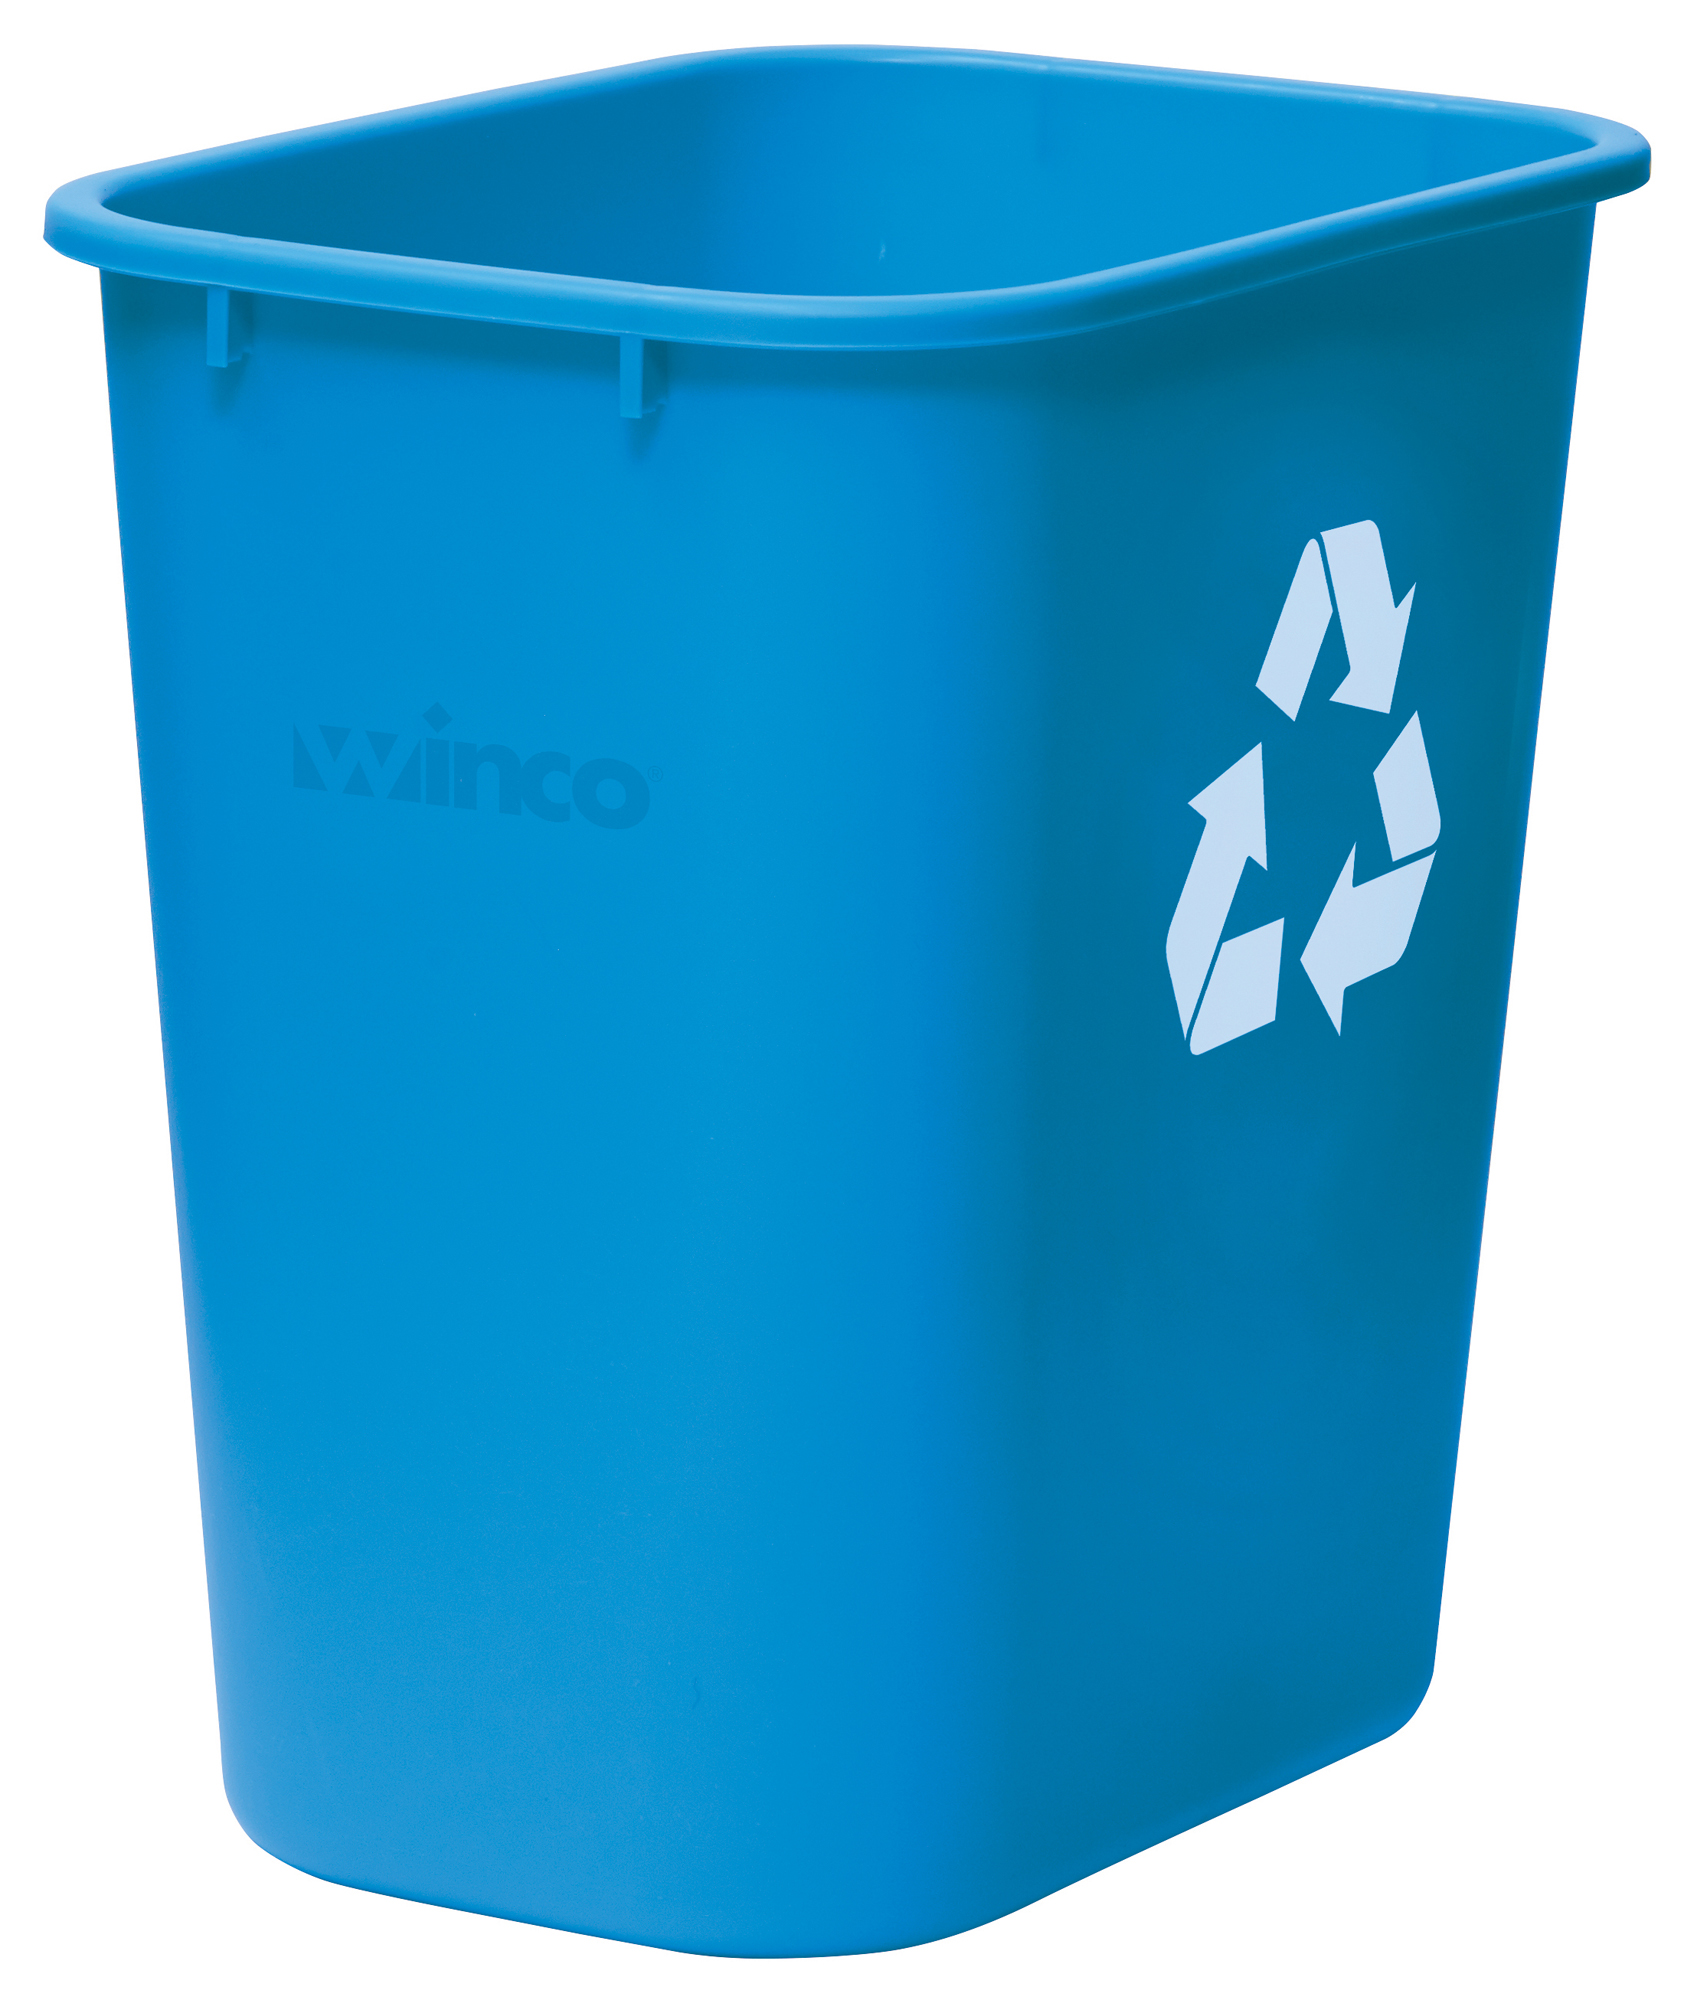 Winco PWR-28L trash cans & accessories